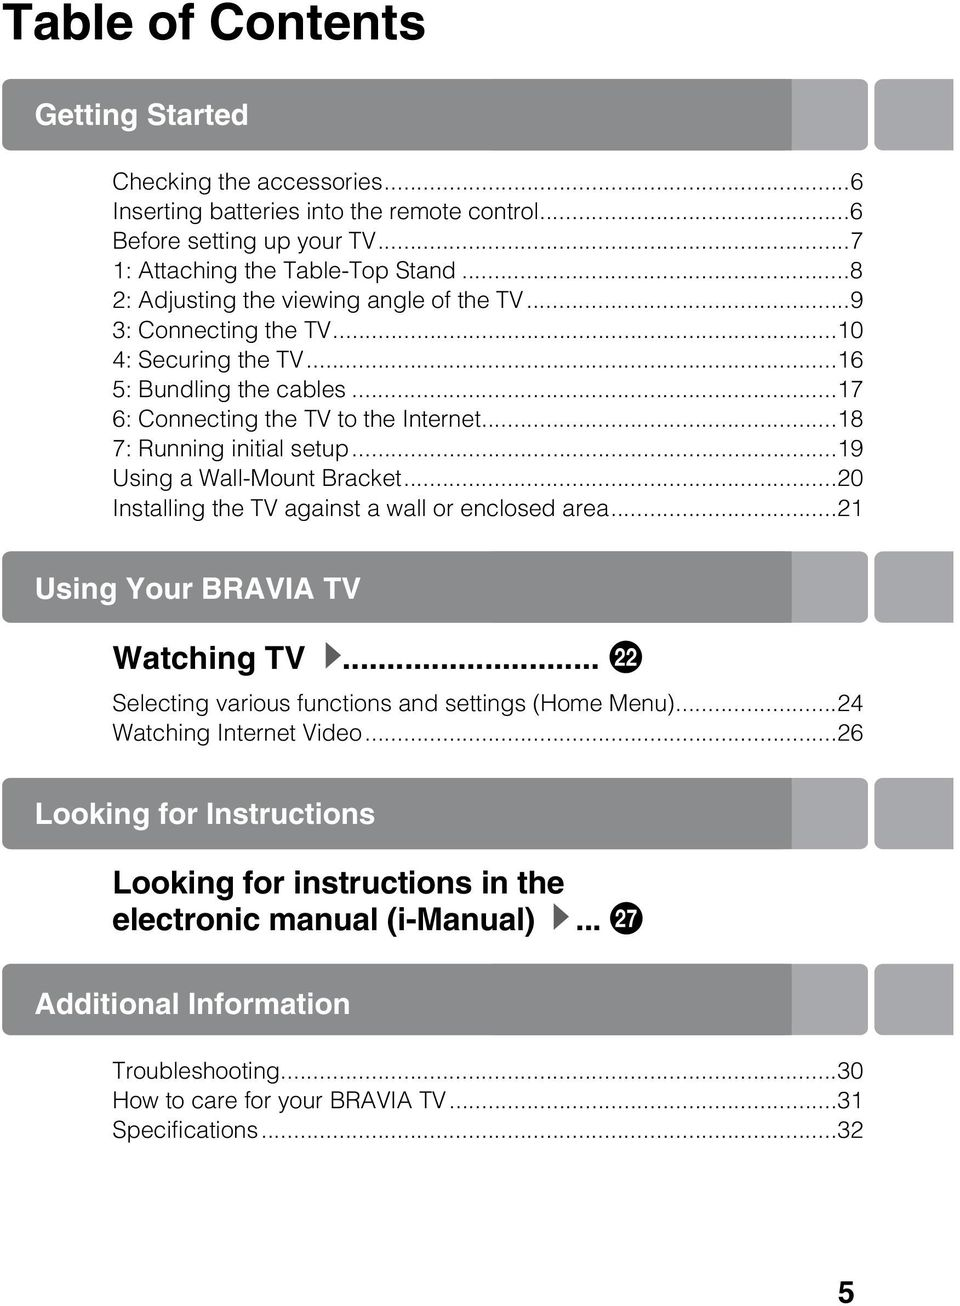 ..19 Using a Wall-Mount Bracket...20 Installing the TV against a wall or enclosed area...21 Using Your BRAVIA TV Watching TV B... ws Selecting various functions and settings (Home Menu).